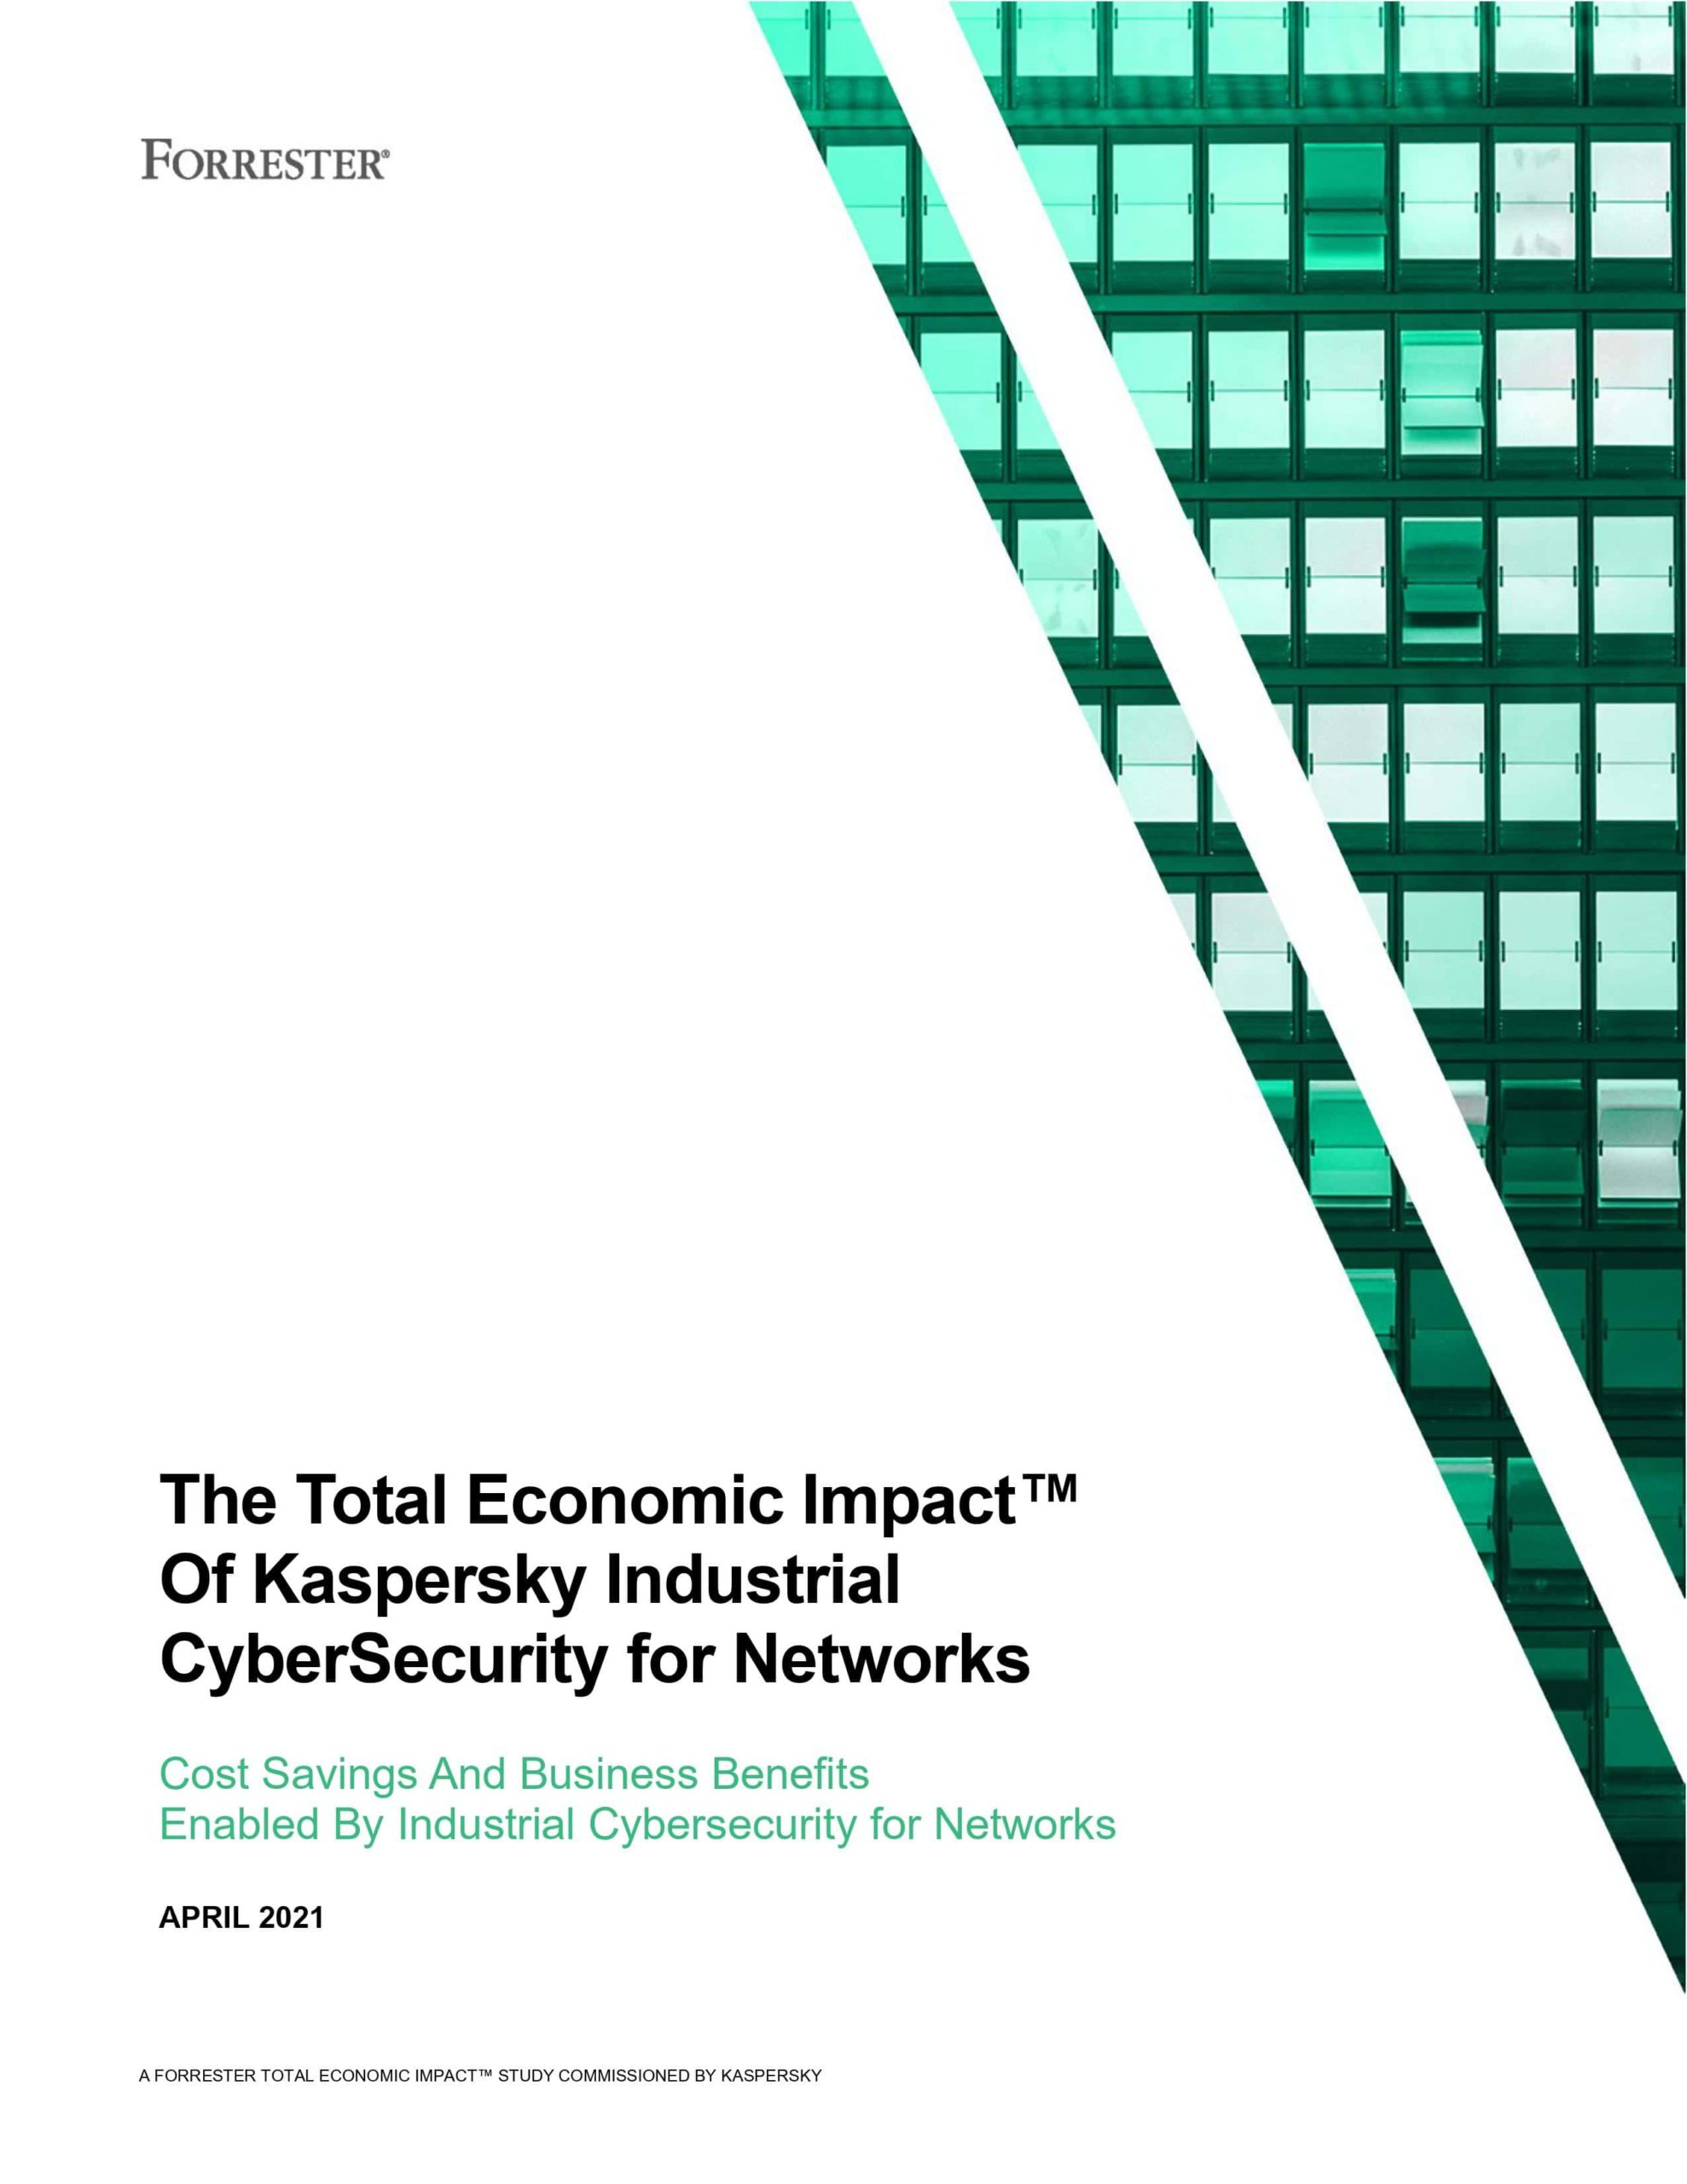 The Total Economic Impact of Kaspersky Industrial CyberSecurity for Networks